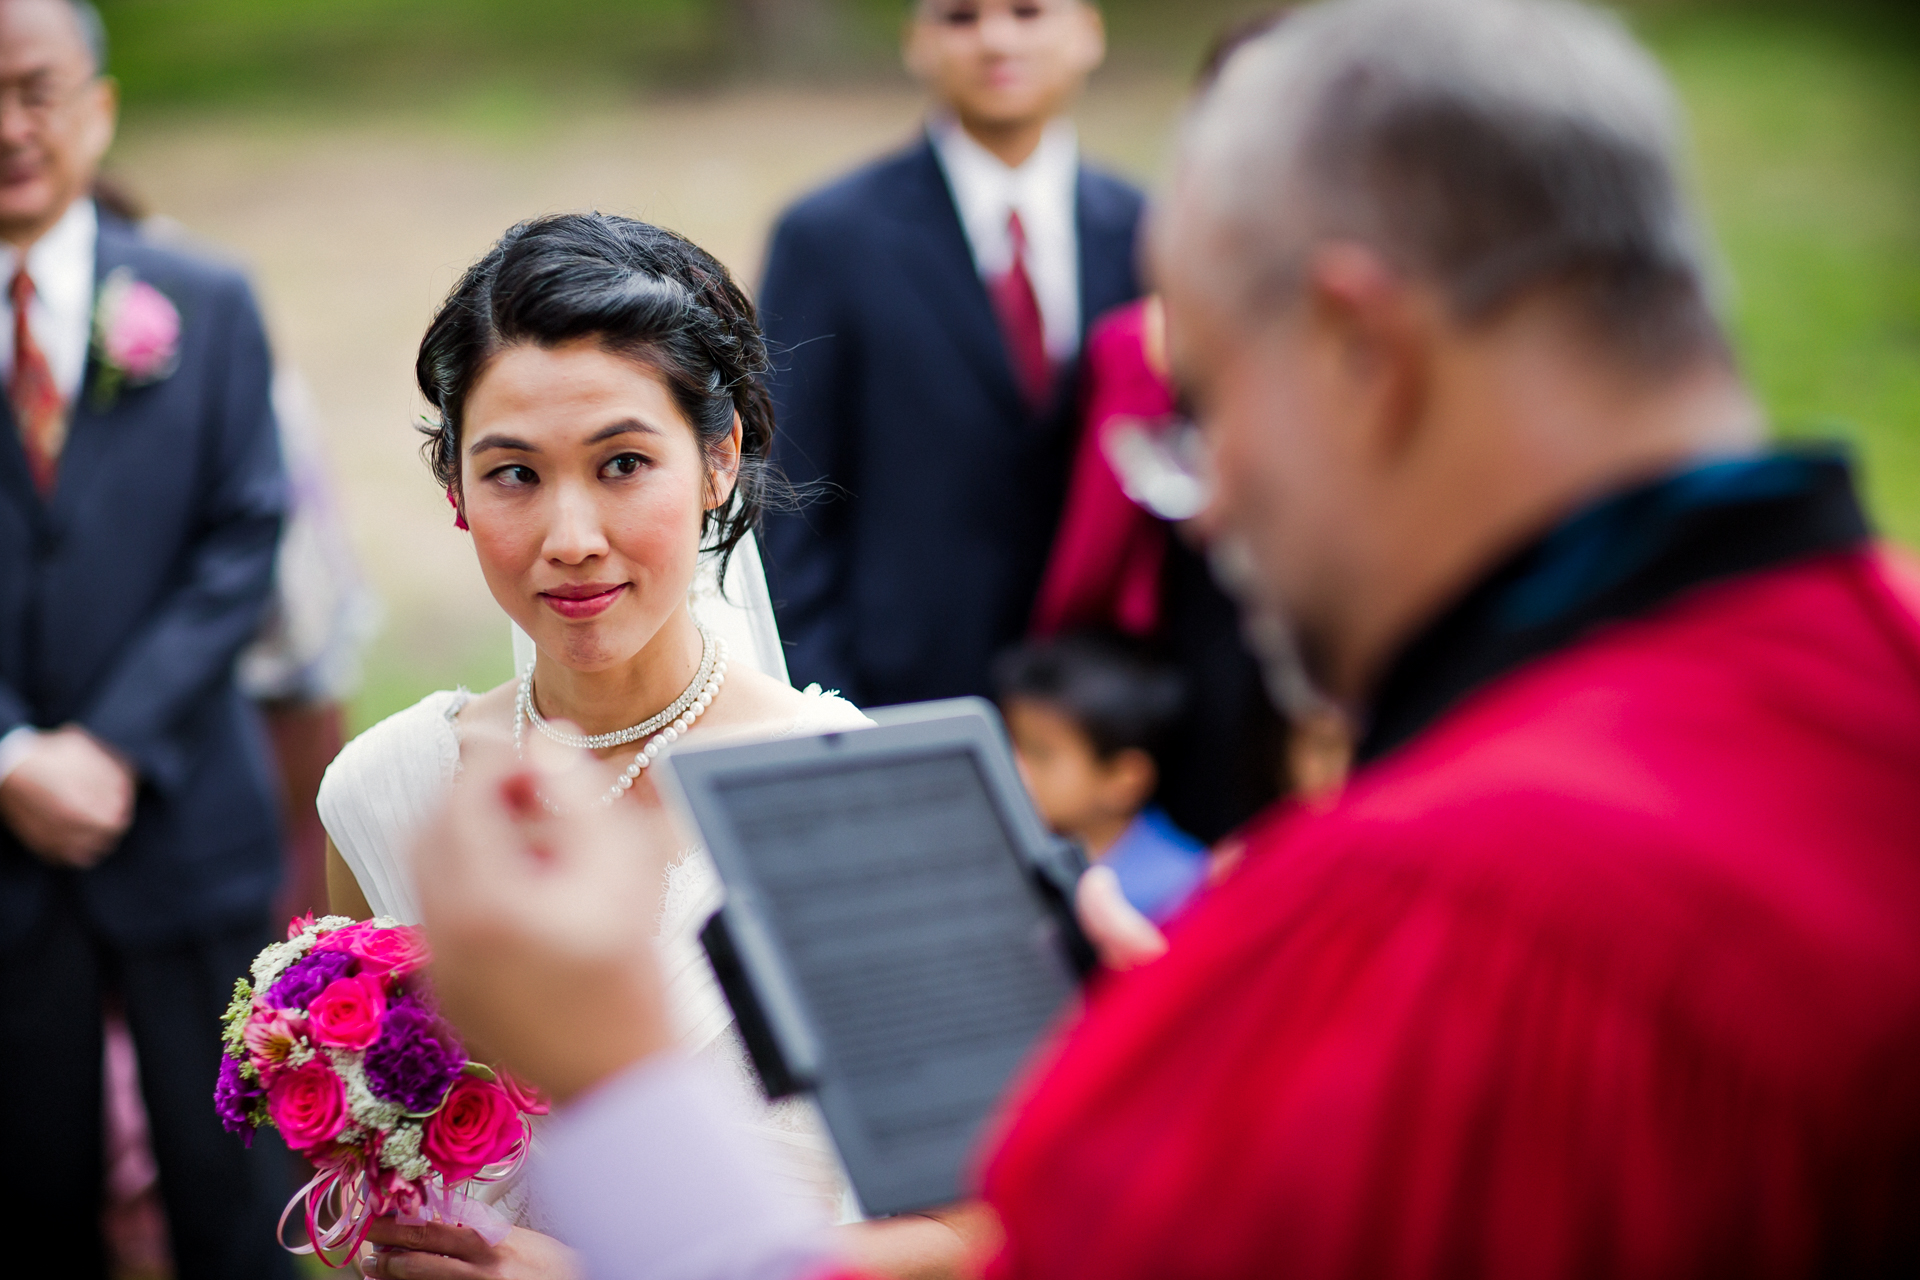 San Francisco Park Elopement Ceremony Photography | The bride watches and listens to the officiant as he speaks